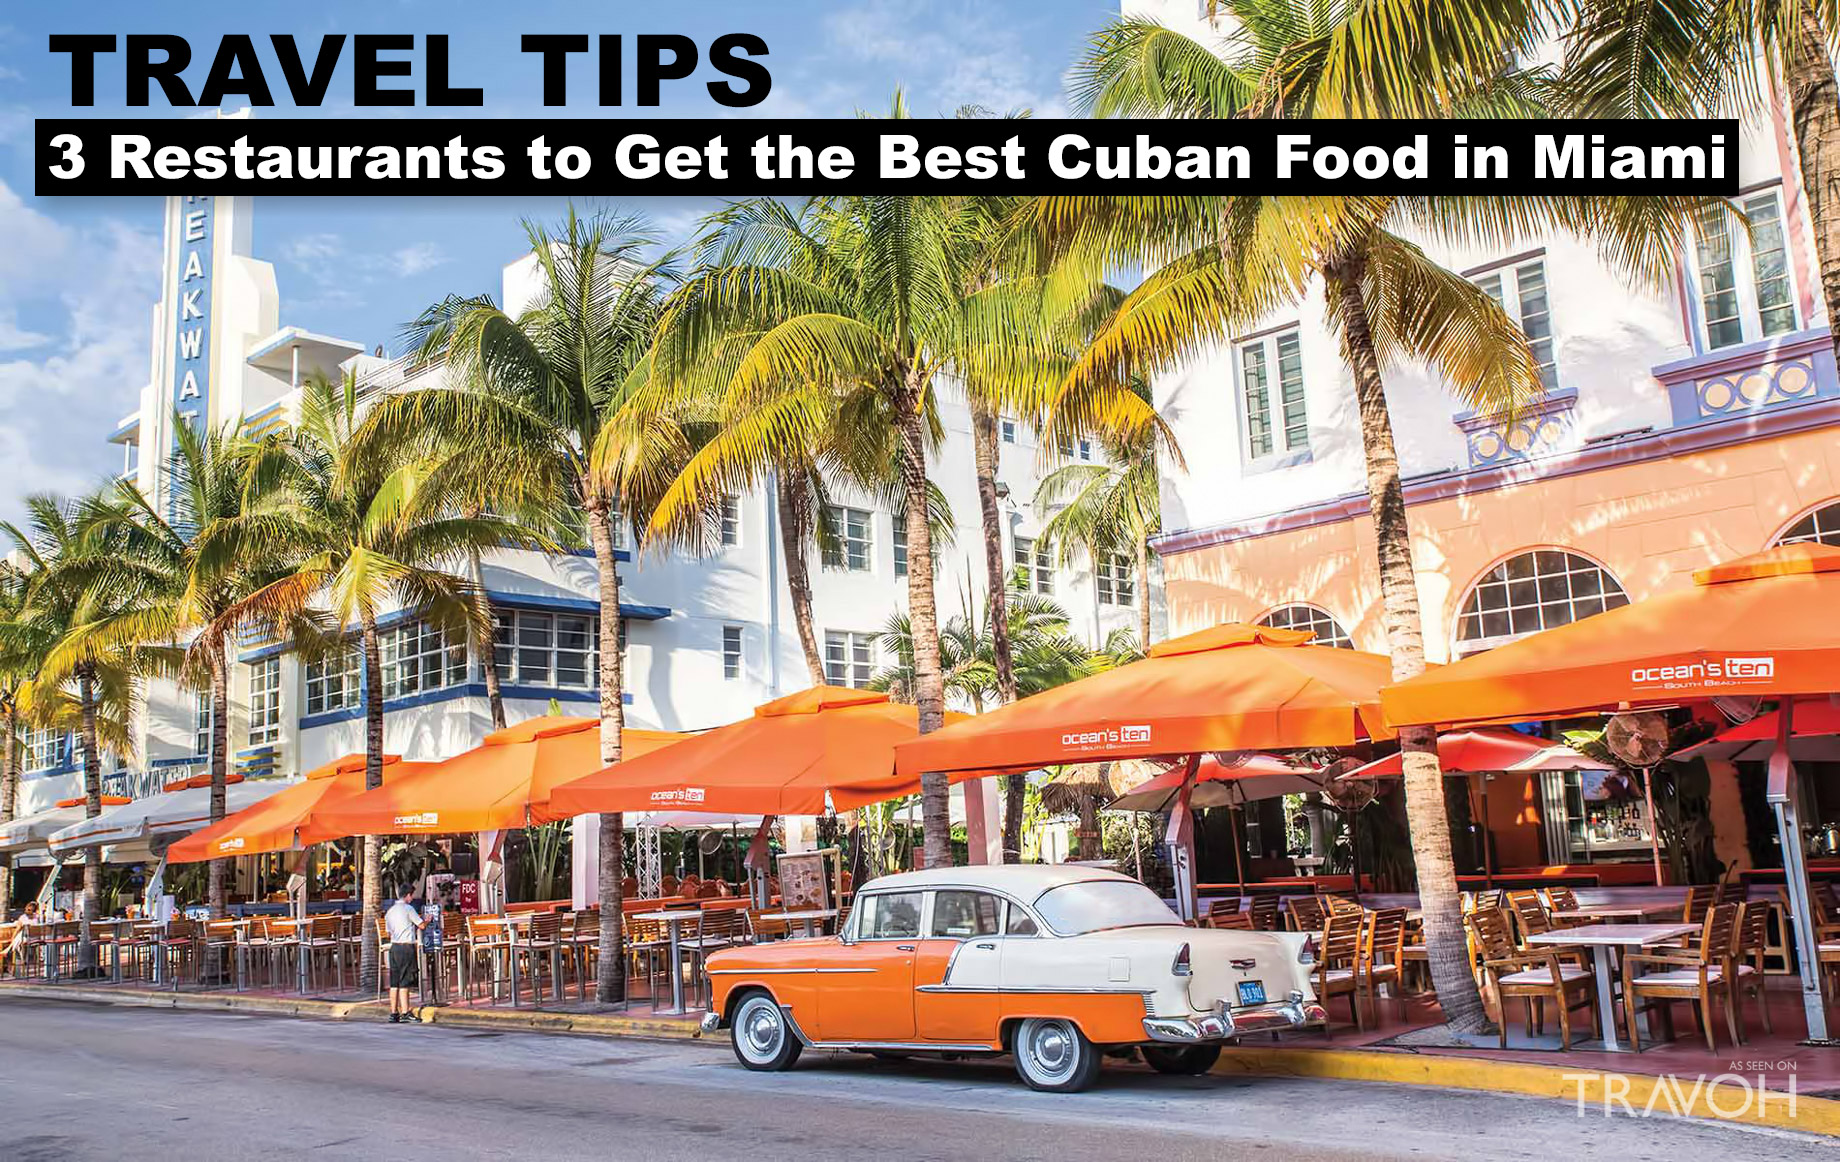 Travel Tips - 3 Restaurants to Get the Best Cuban Food in Miami